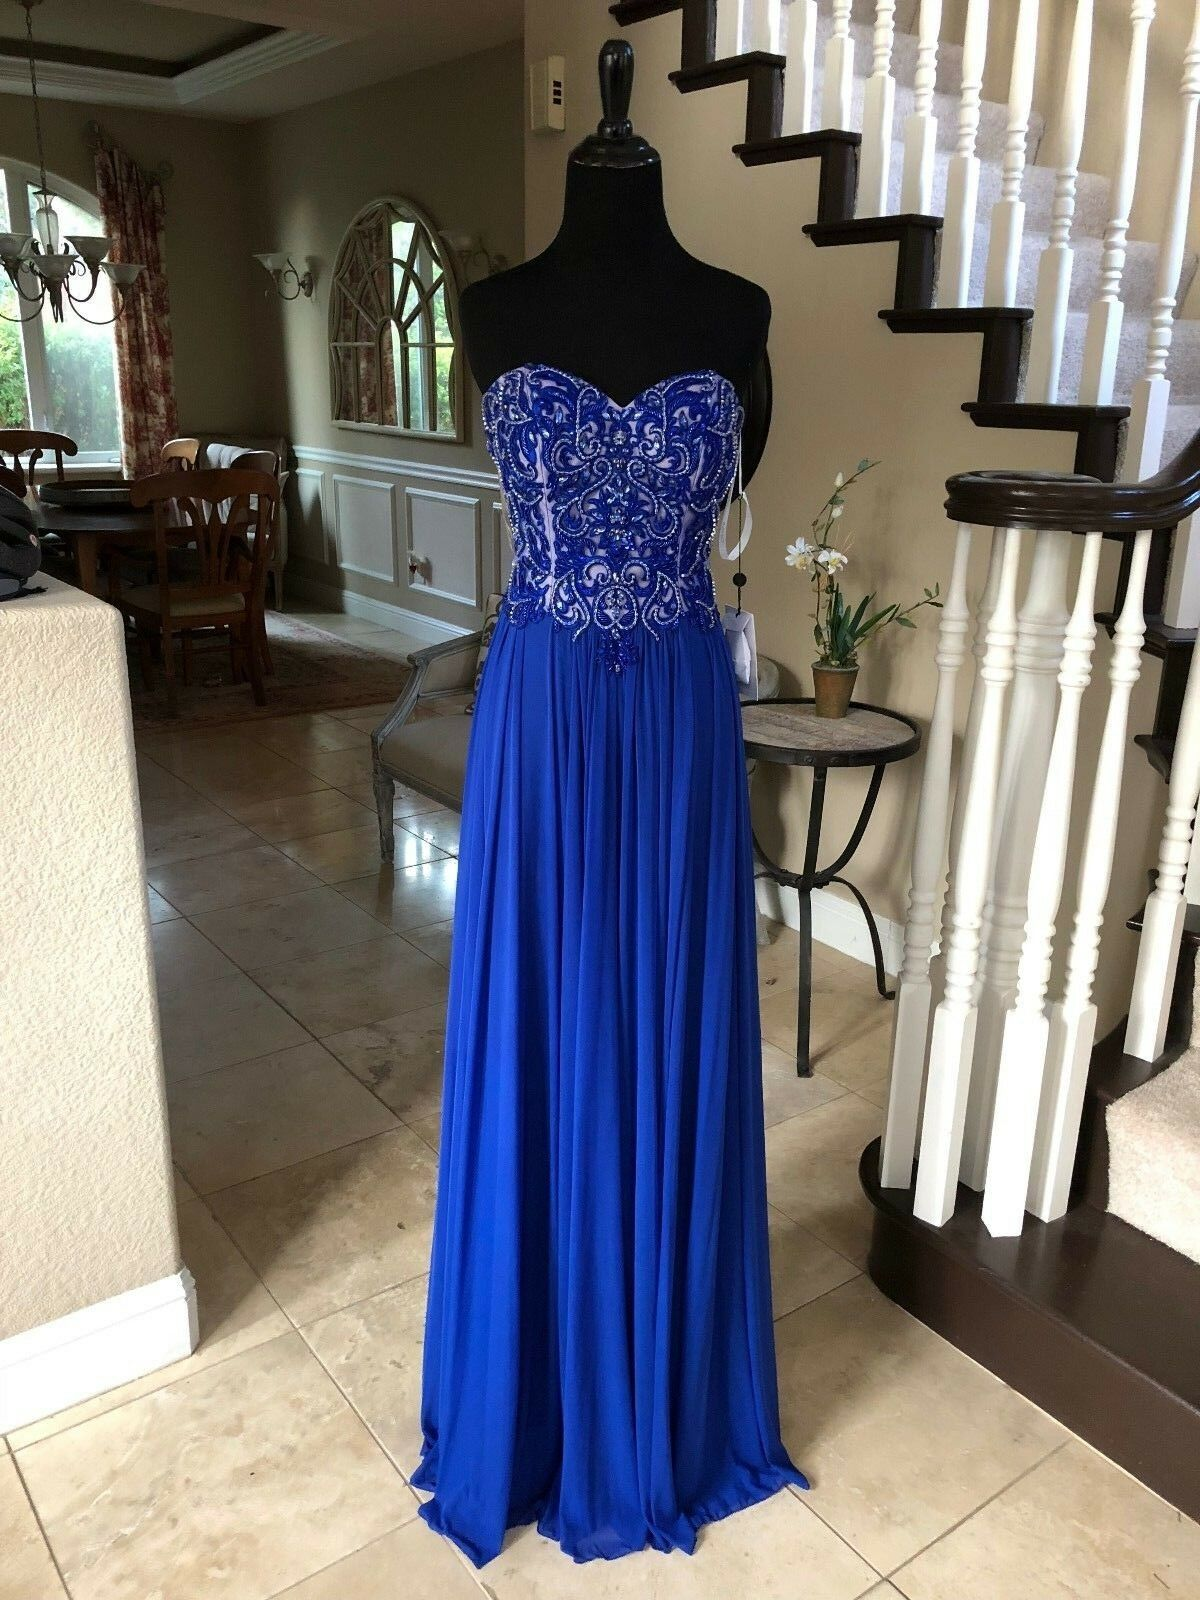 378 NWT ROYAL JVN BY JOVANI PROM PAGEANT FORMAL WEDDING DRESS GOWN SZ 6